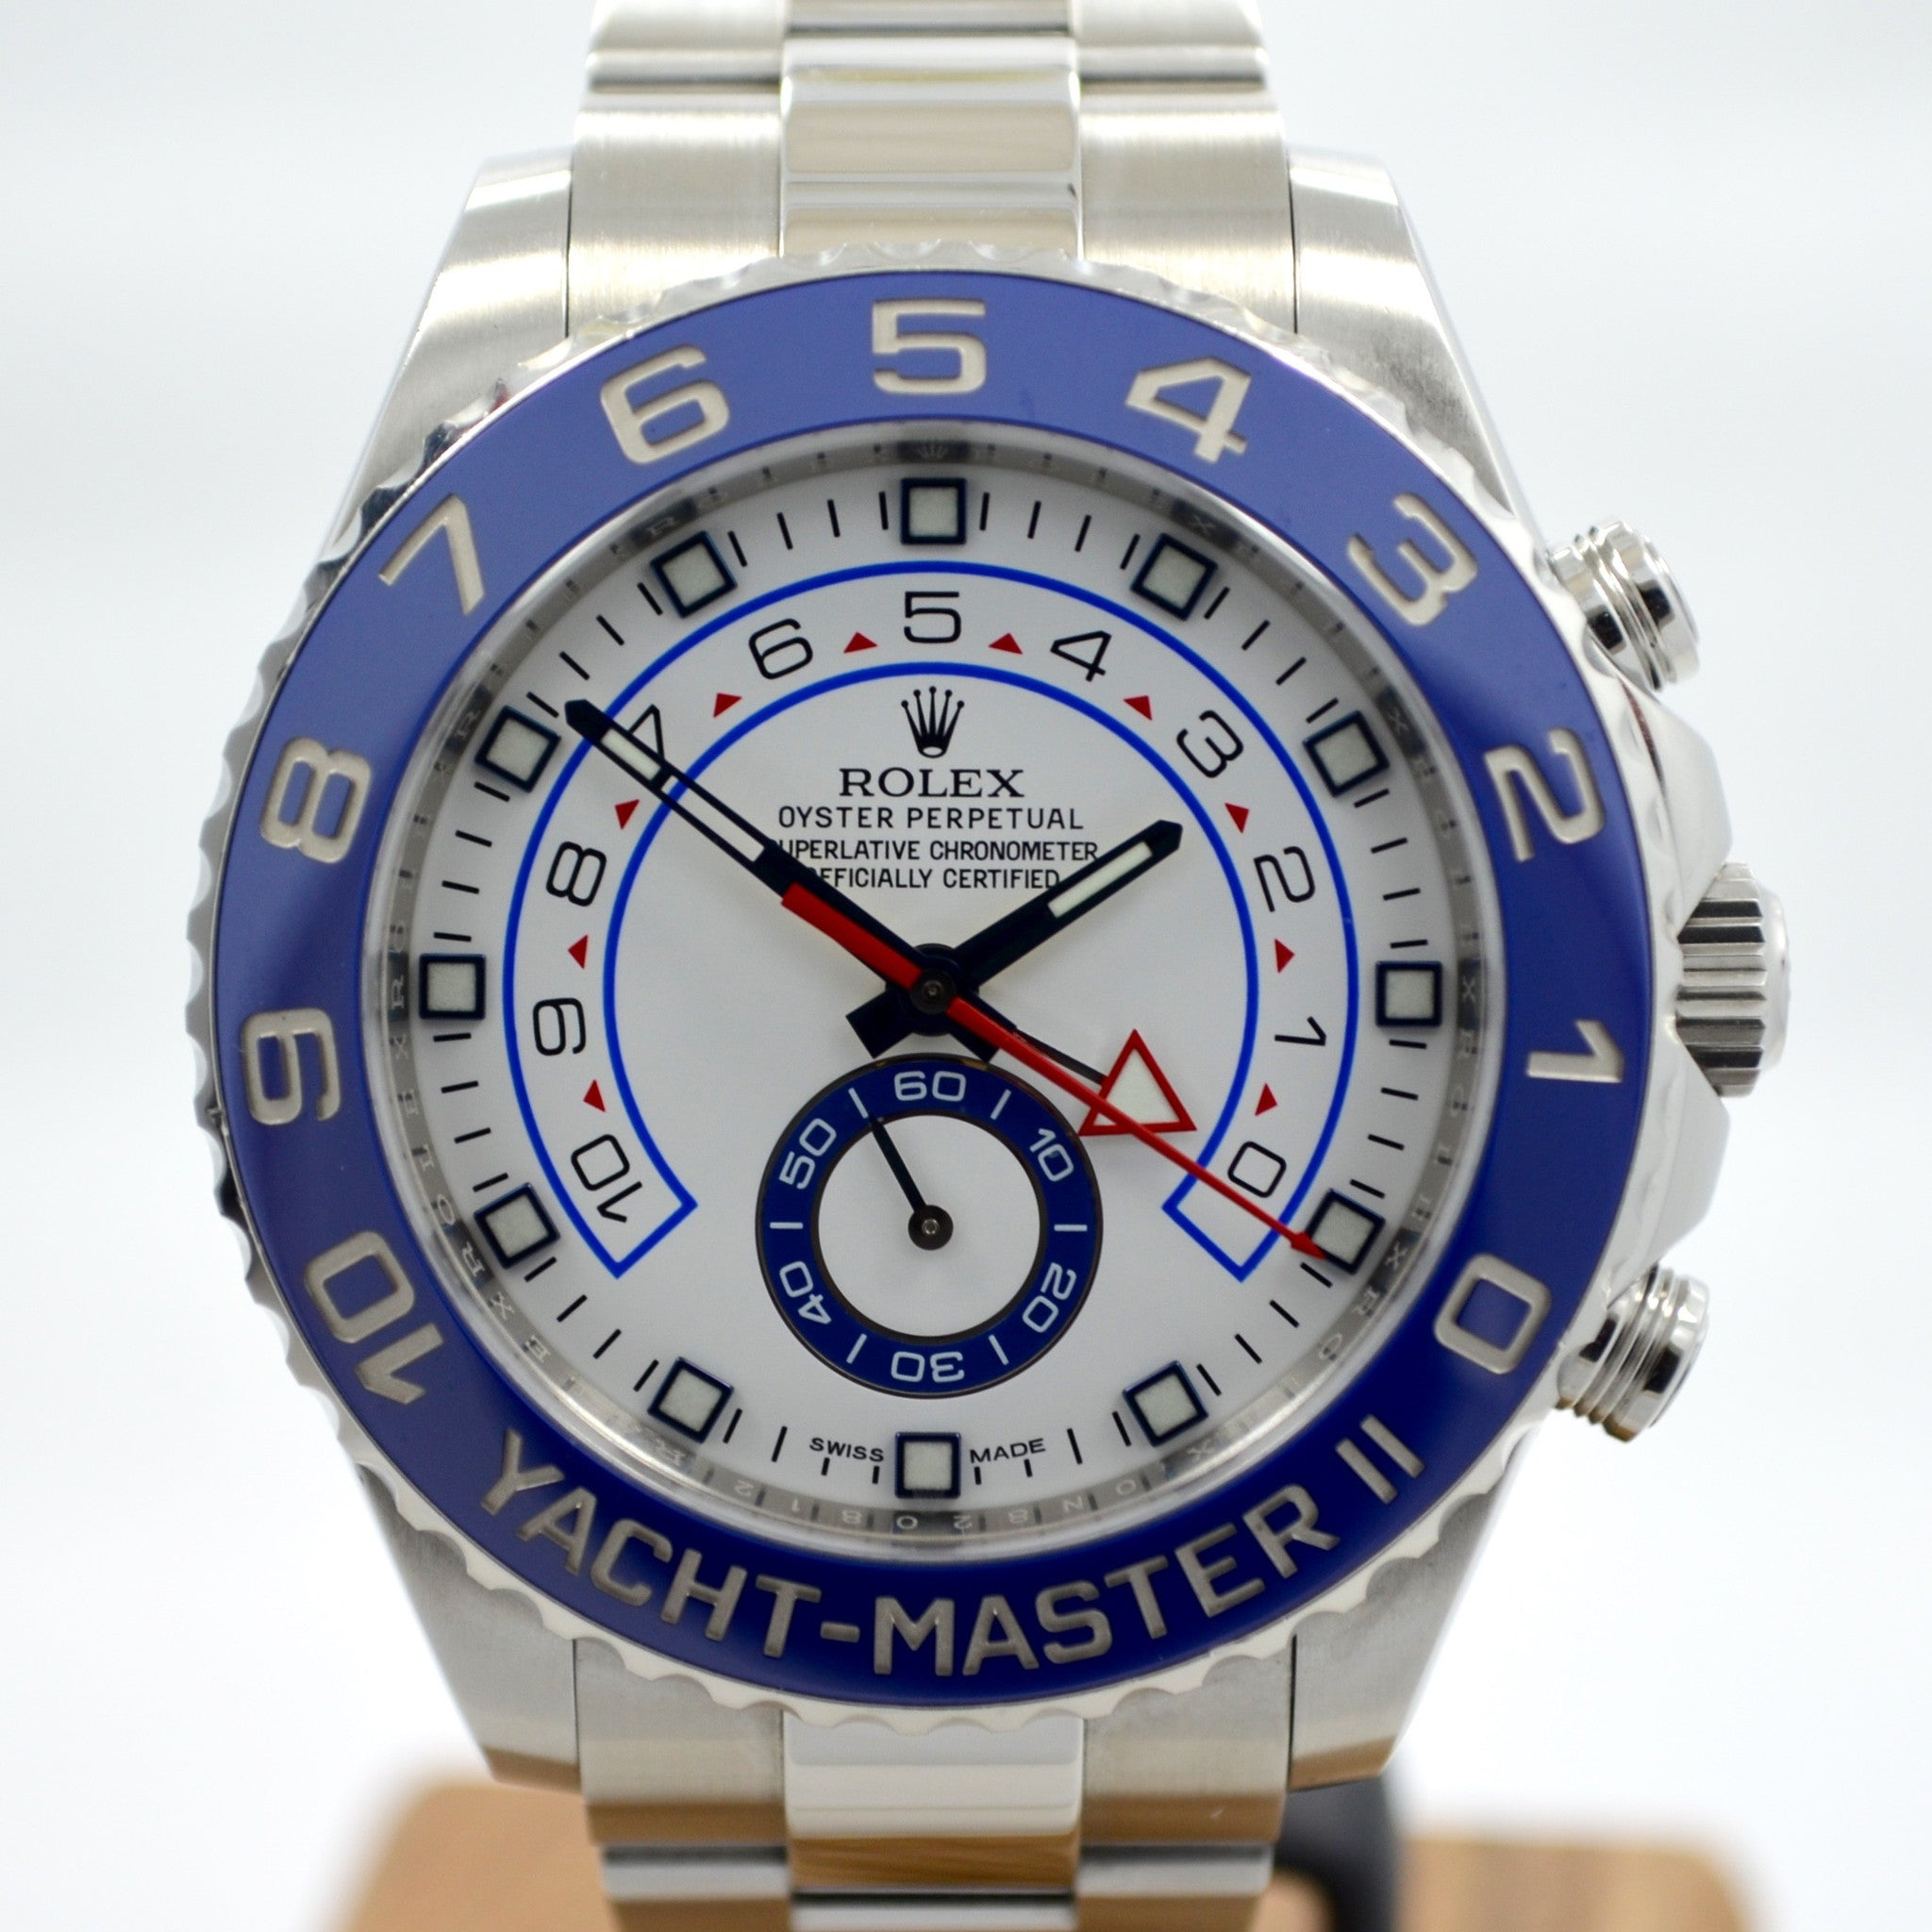 Rolex Yachtmaster II 116680 Stainless Steel Automatic Ceramic Wristwatch - Hashtag Watch Company